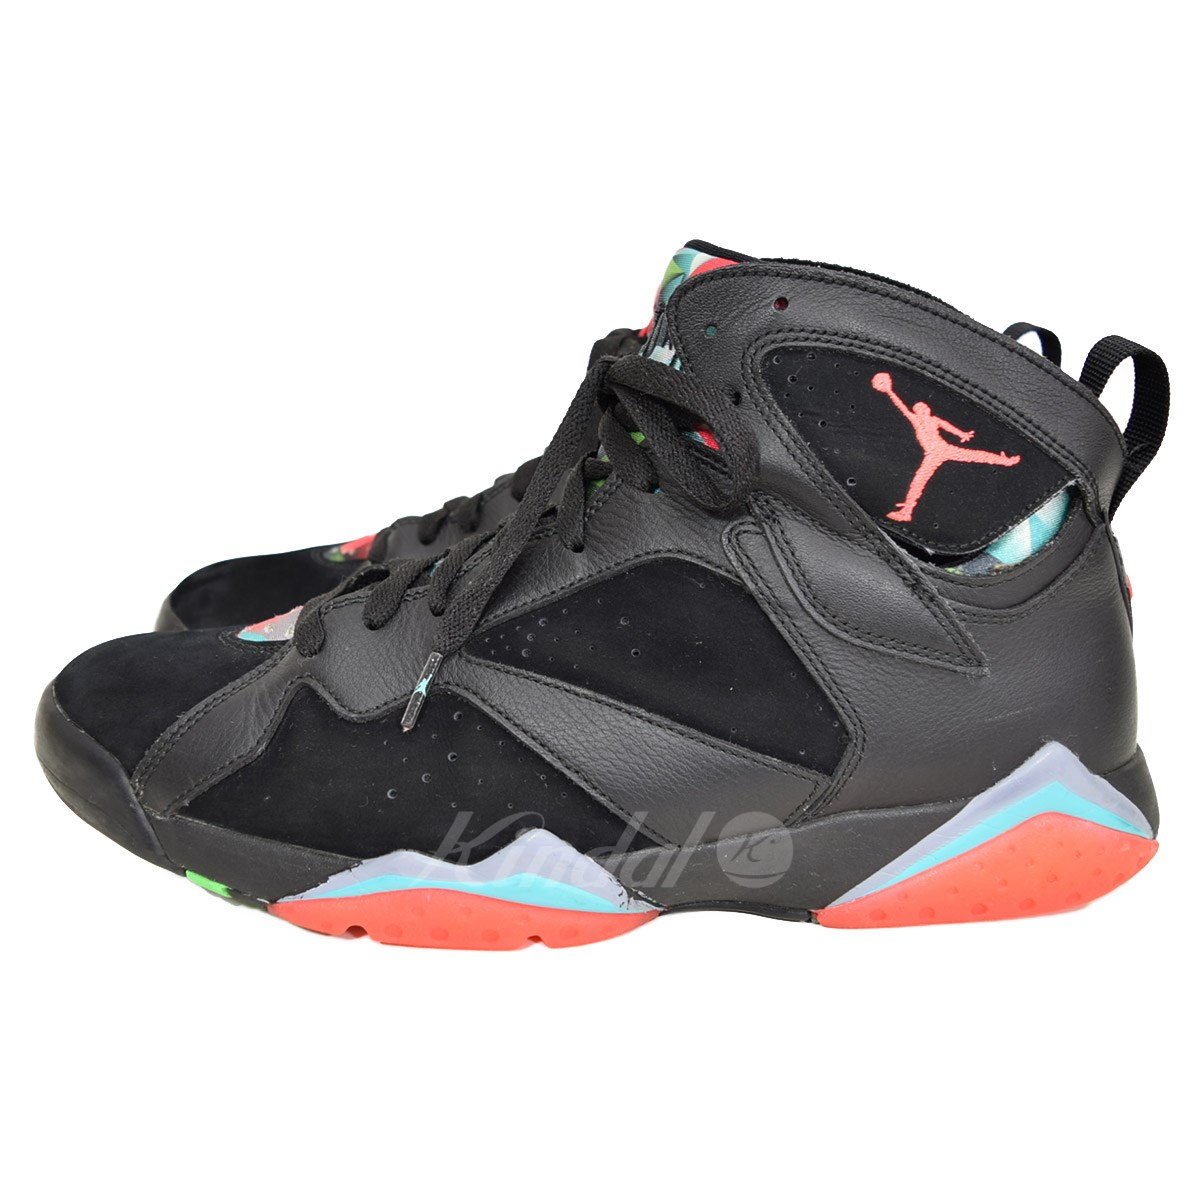 NIKE AIR JORDAN 7 RETRO Air Jordan 7 nostalgic 30th memory 705350 007 black  size  US 11. 5 (Nike) 7bb8d8592